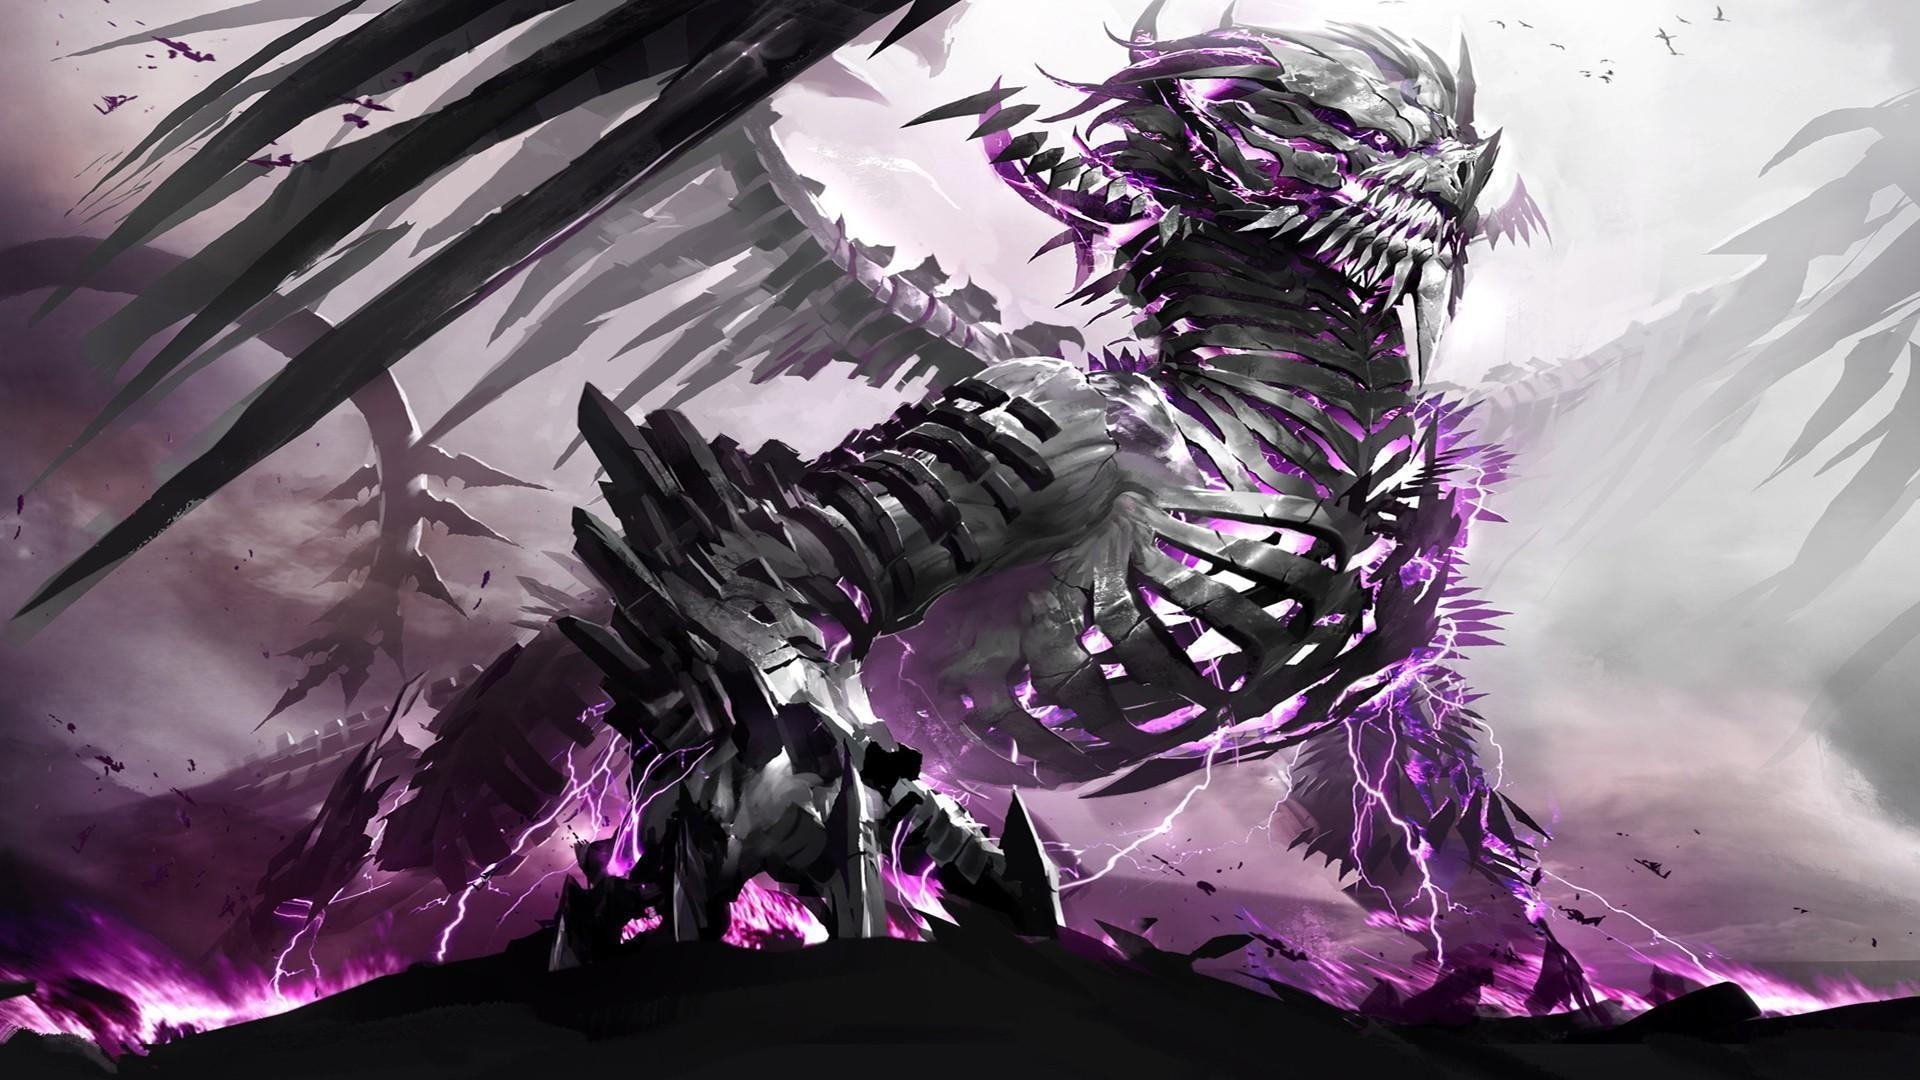 epic dragon wallpapers - wallpaper cave